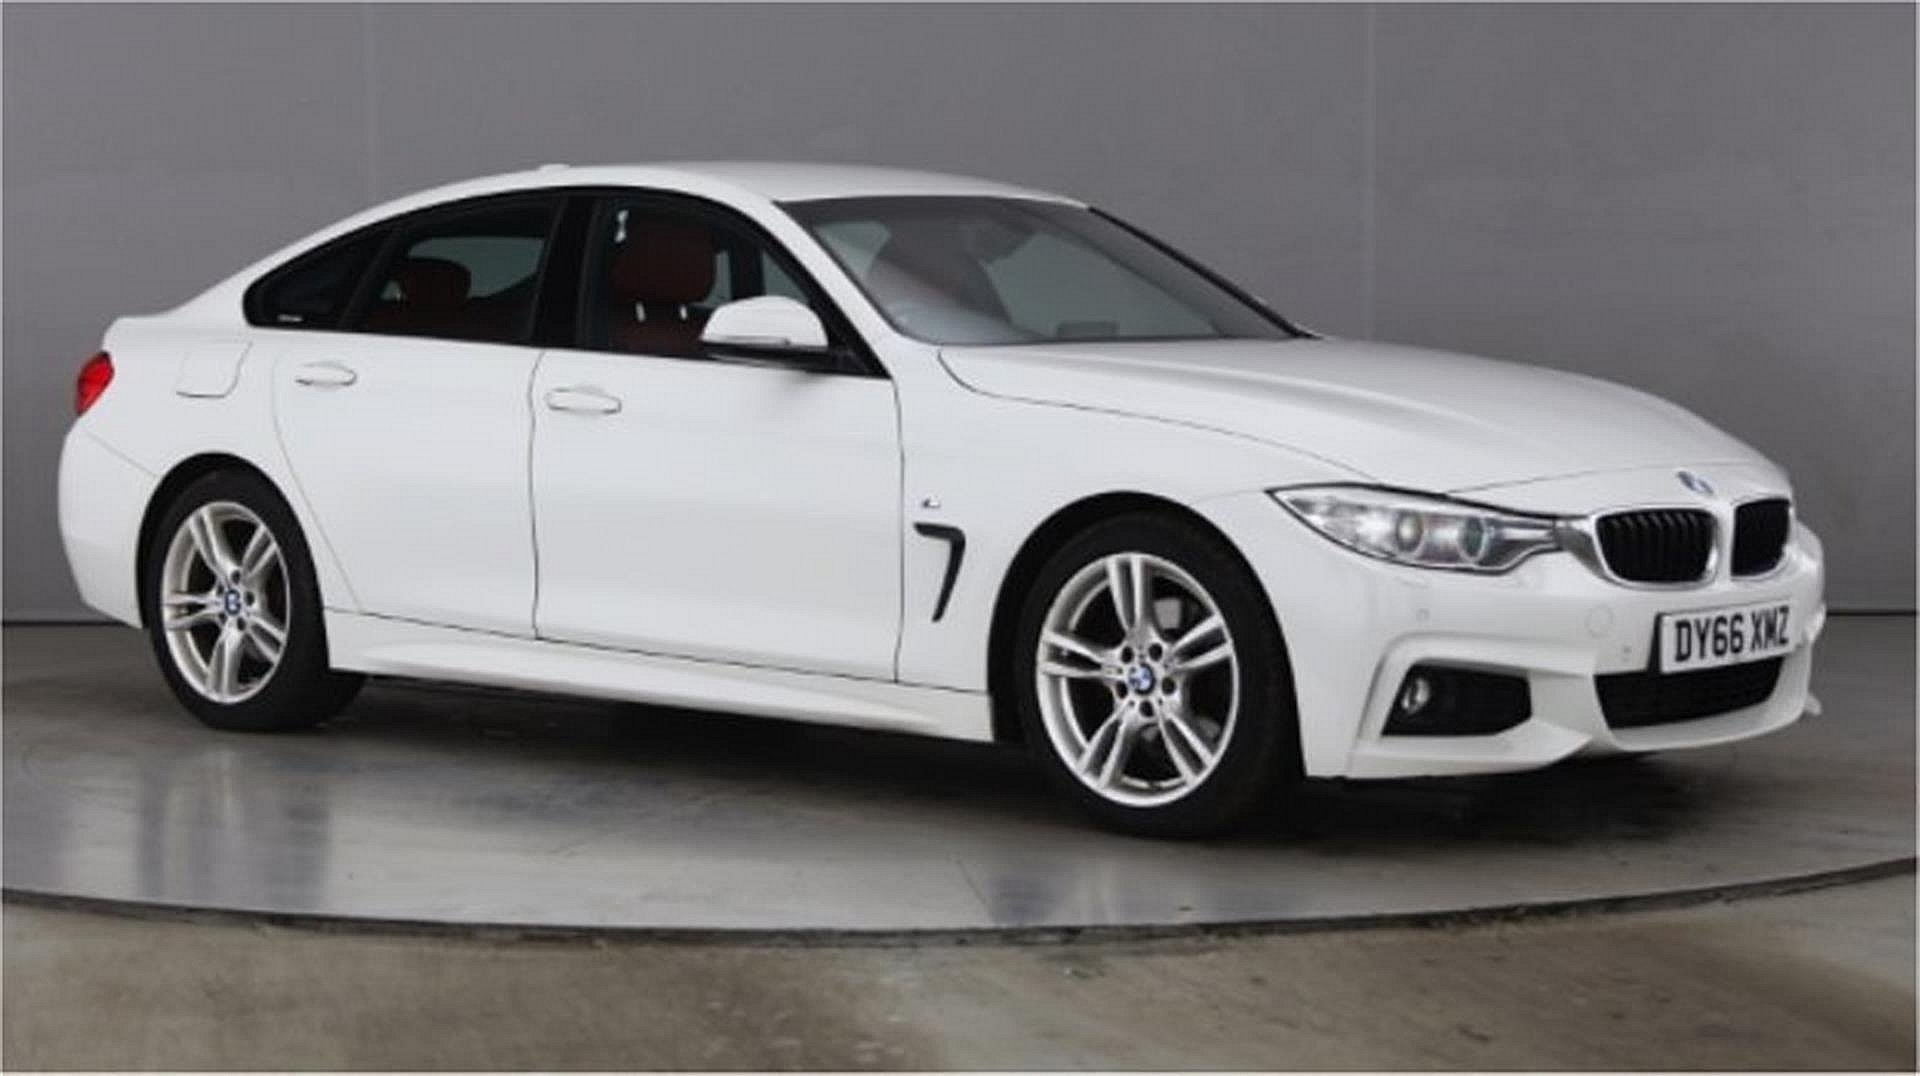 2016 BMW GRAN COUPE 420 D 2.0 190 M SPORT For Sale (picture 1 of 6)